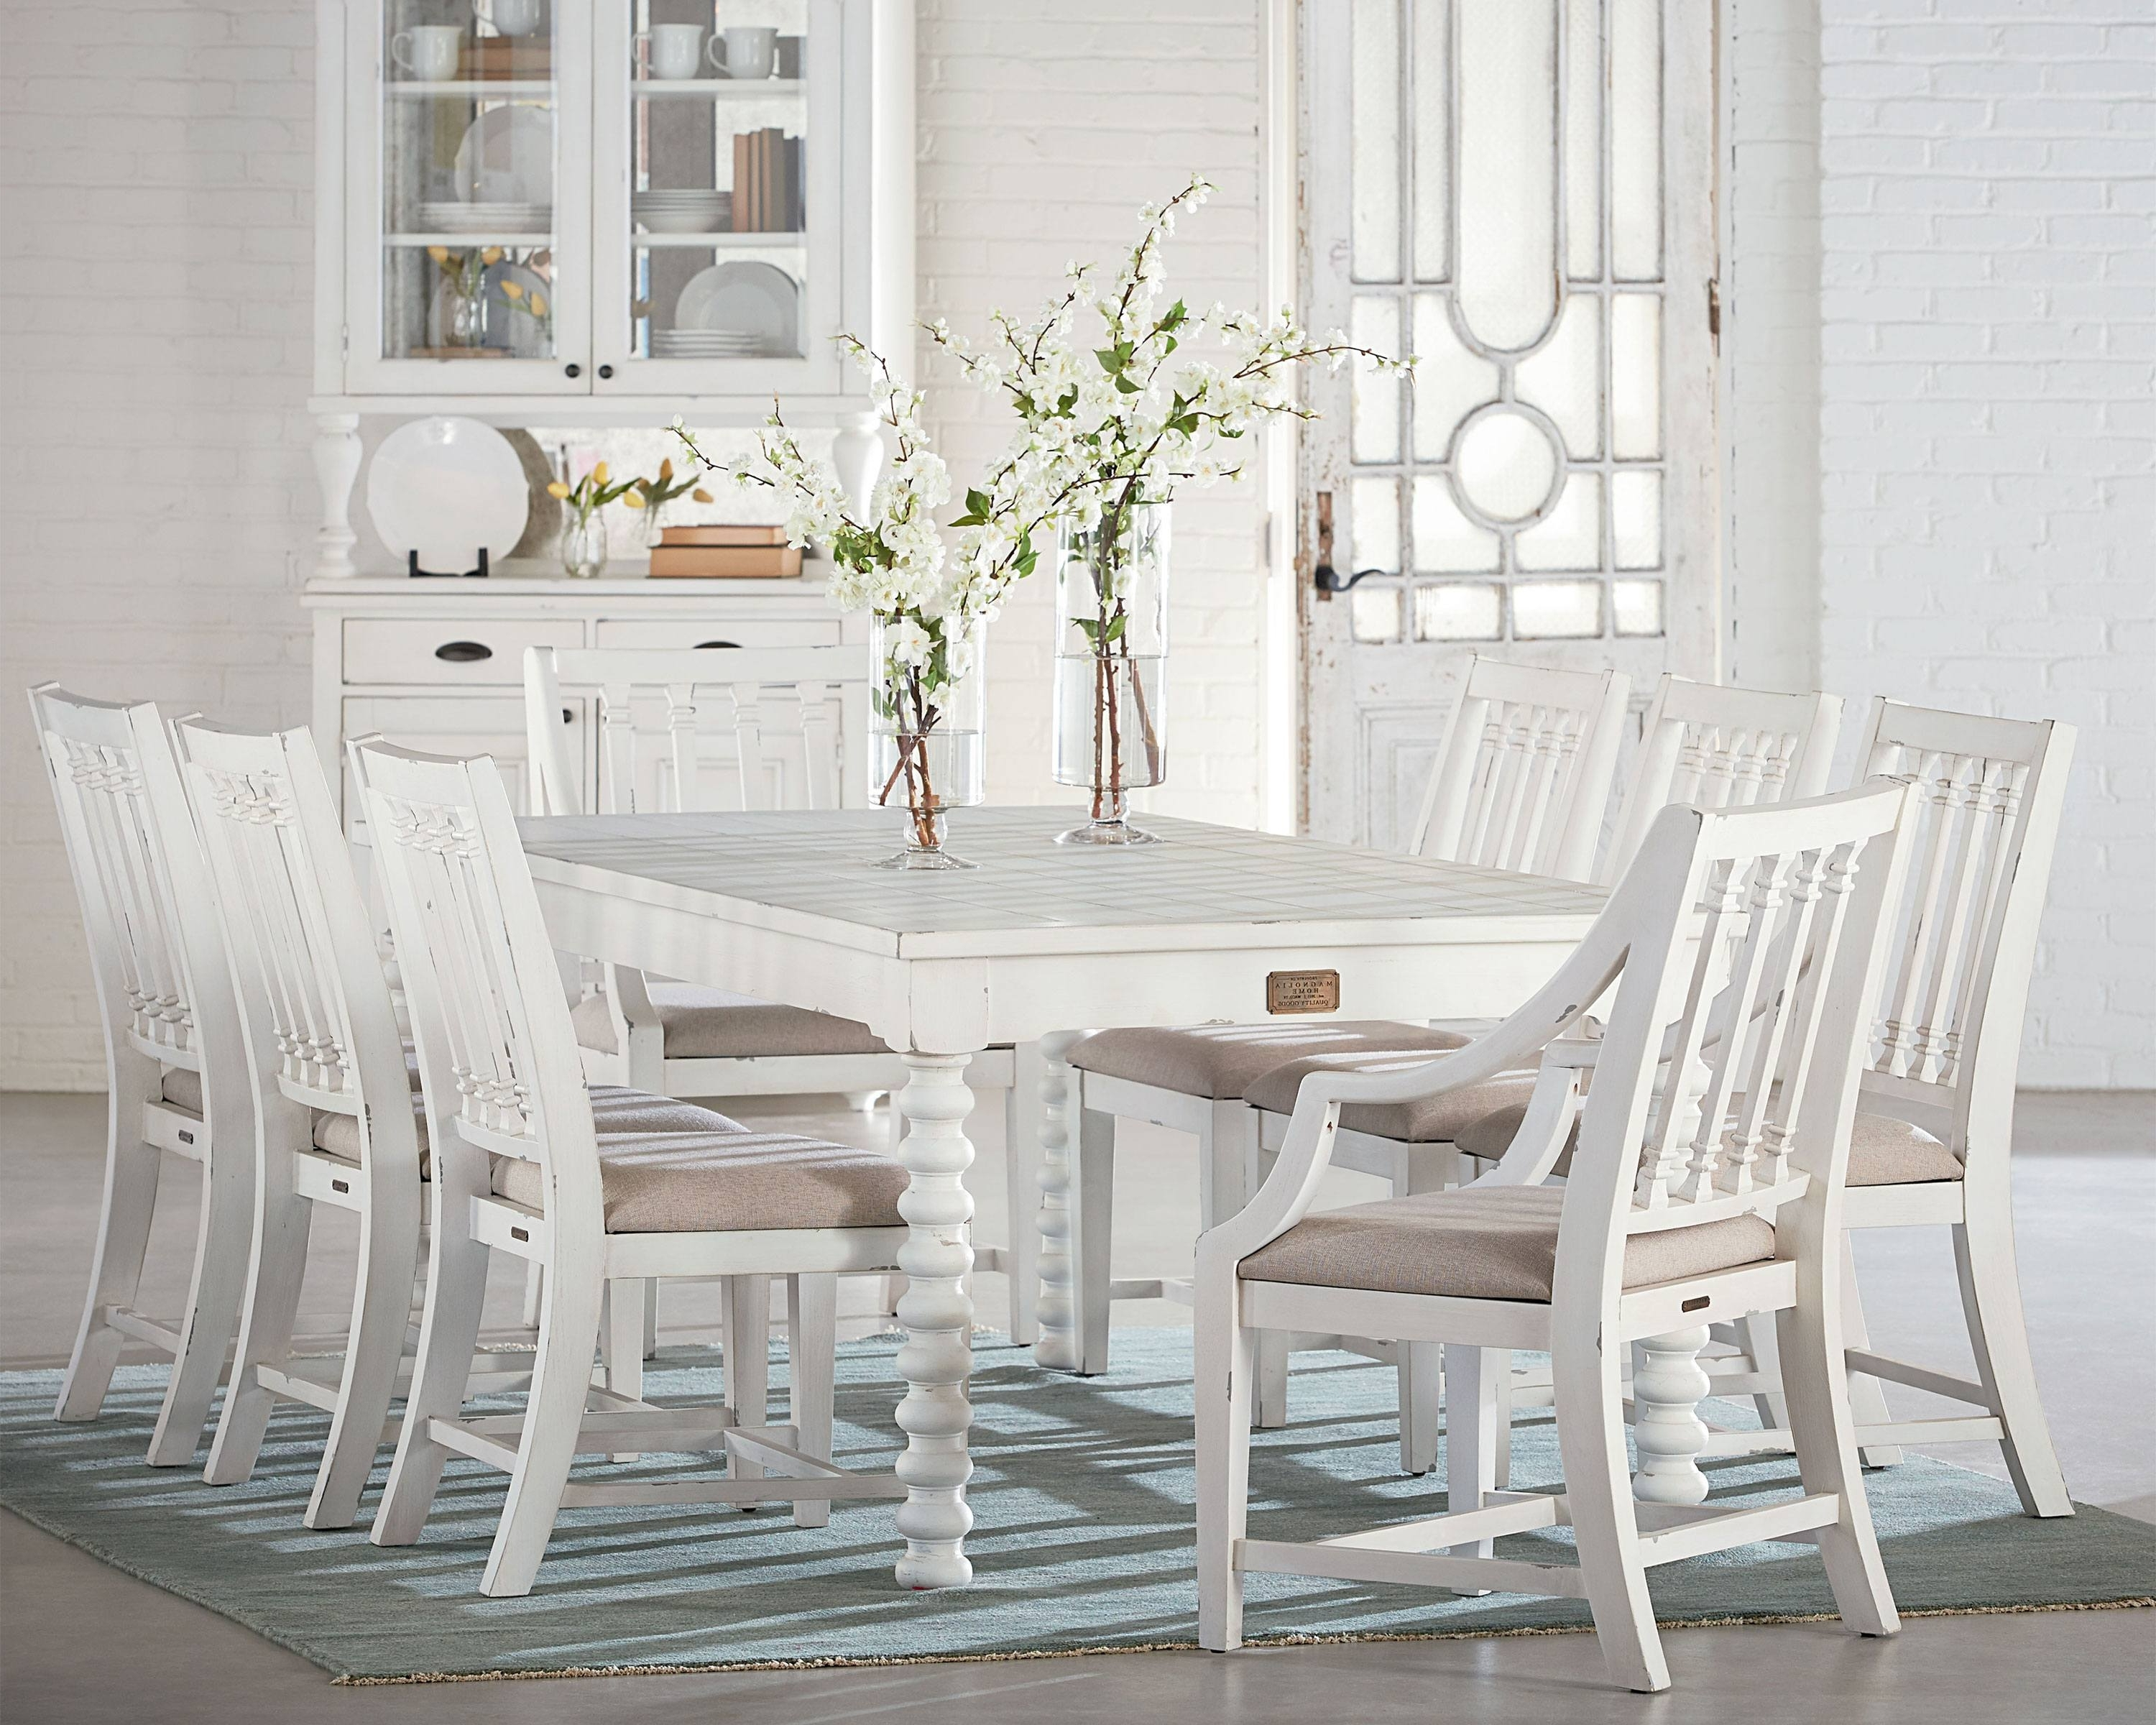 Magnolia Home Revival Side Chairs In Well Liked Spool Leg + Revival – Magnolia Home (View 8 of 20)